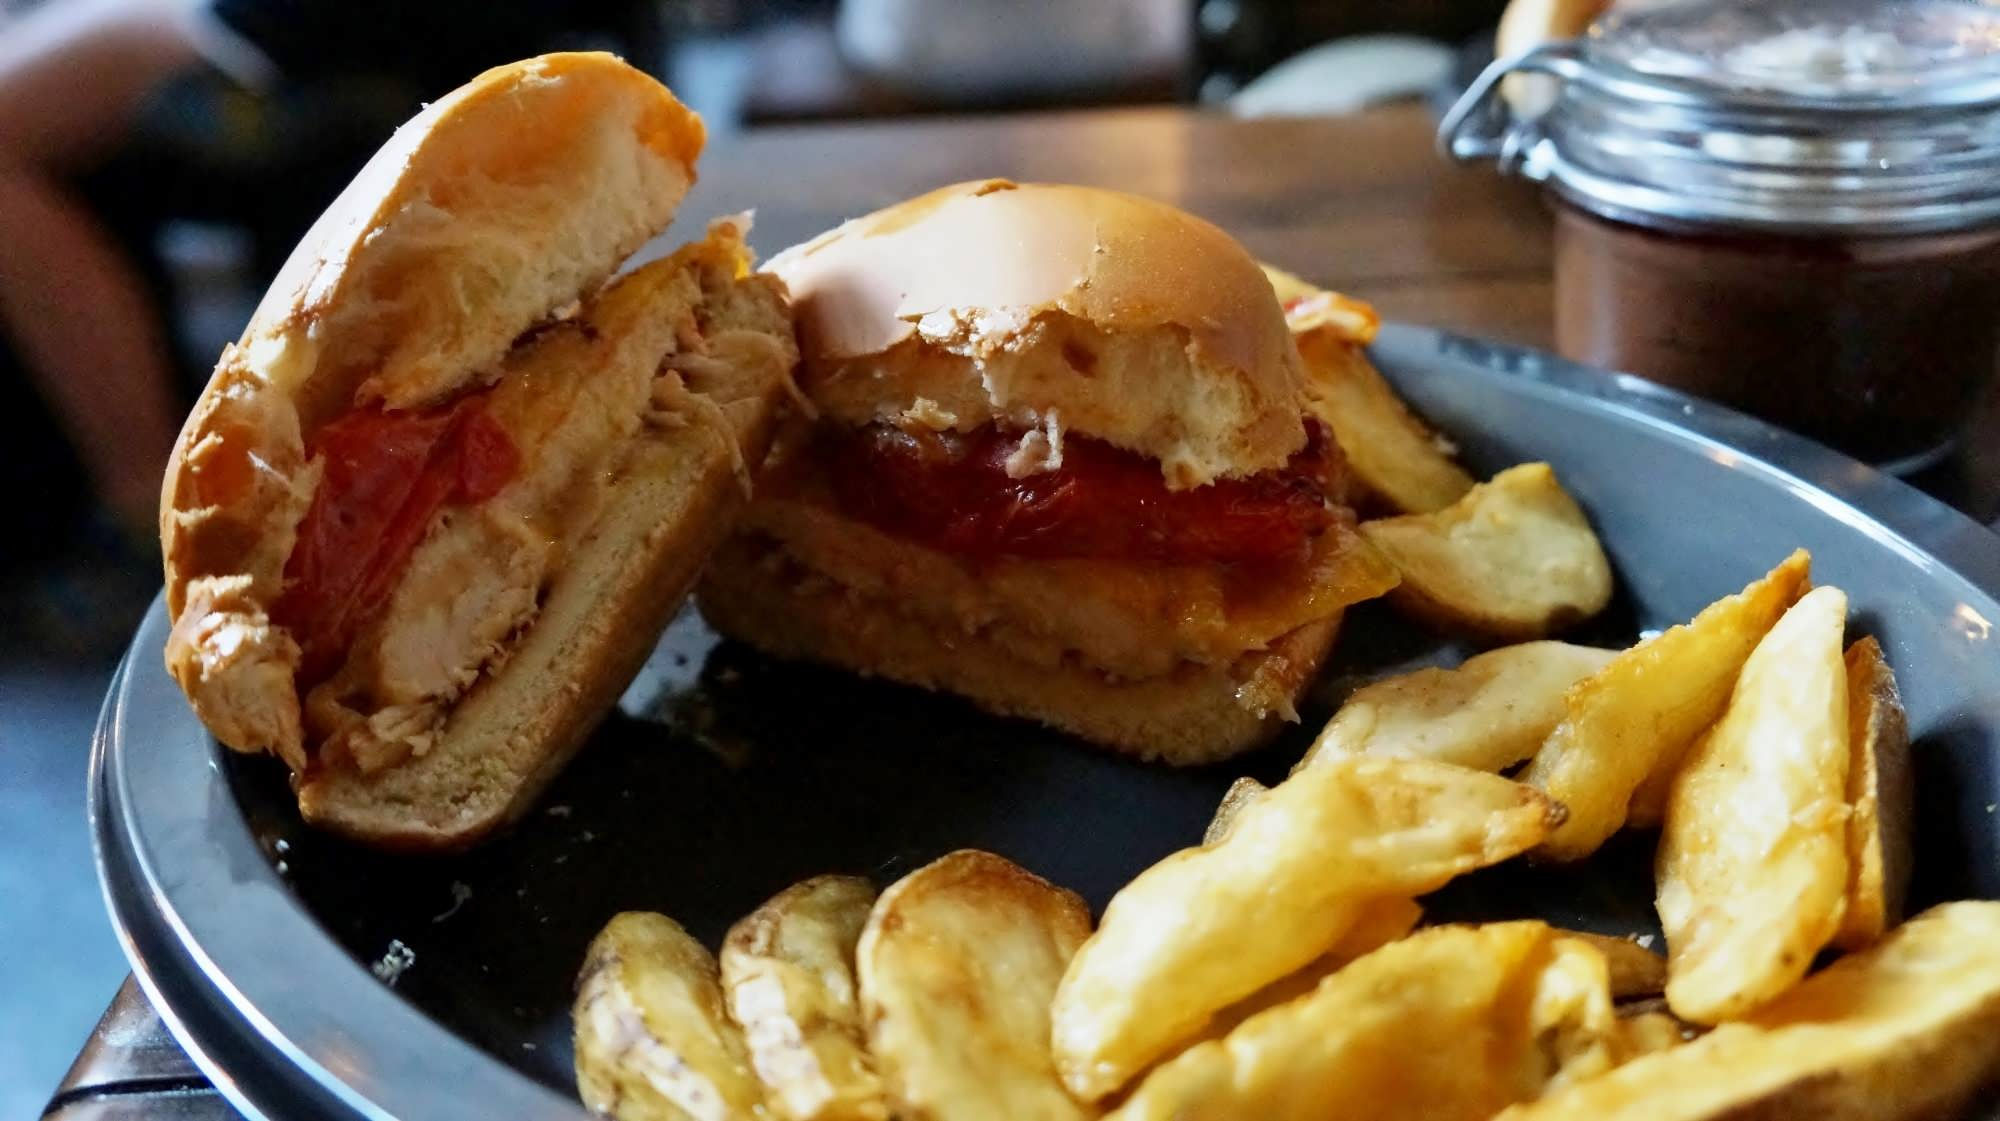 Specialty Chicken Sandwich at the Leaky Cauldron